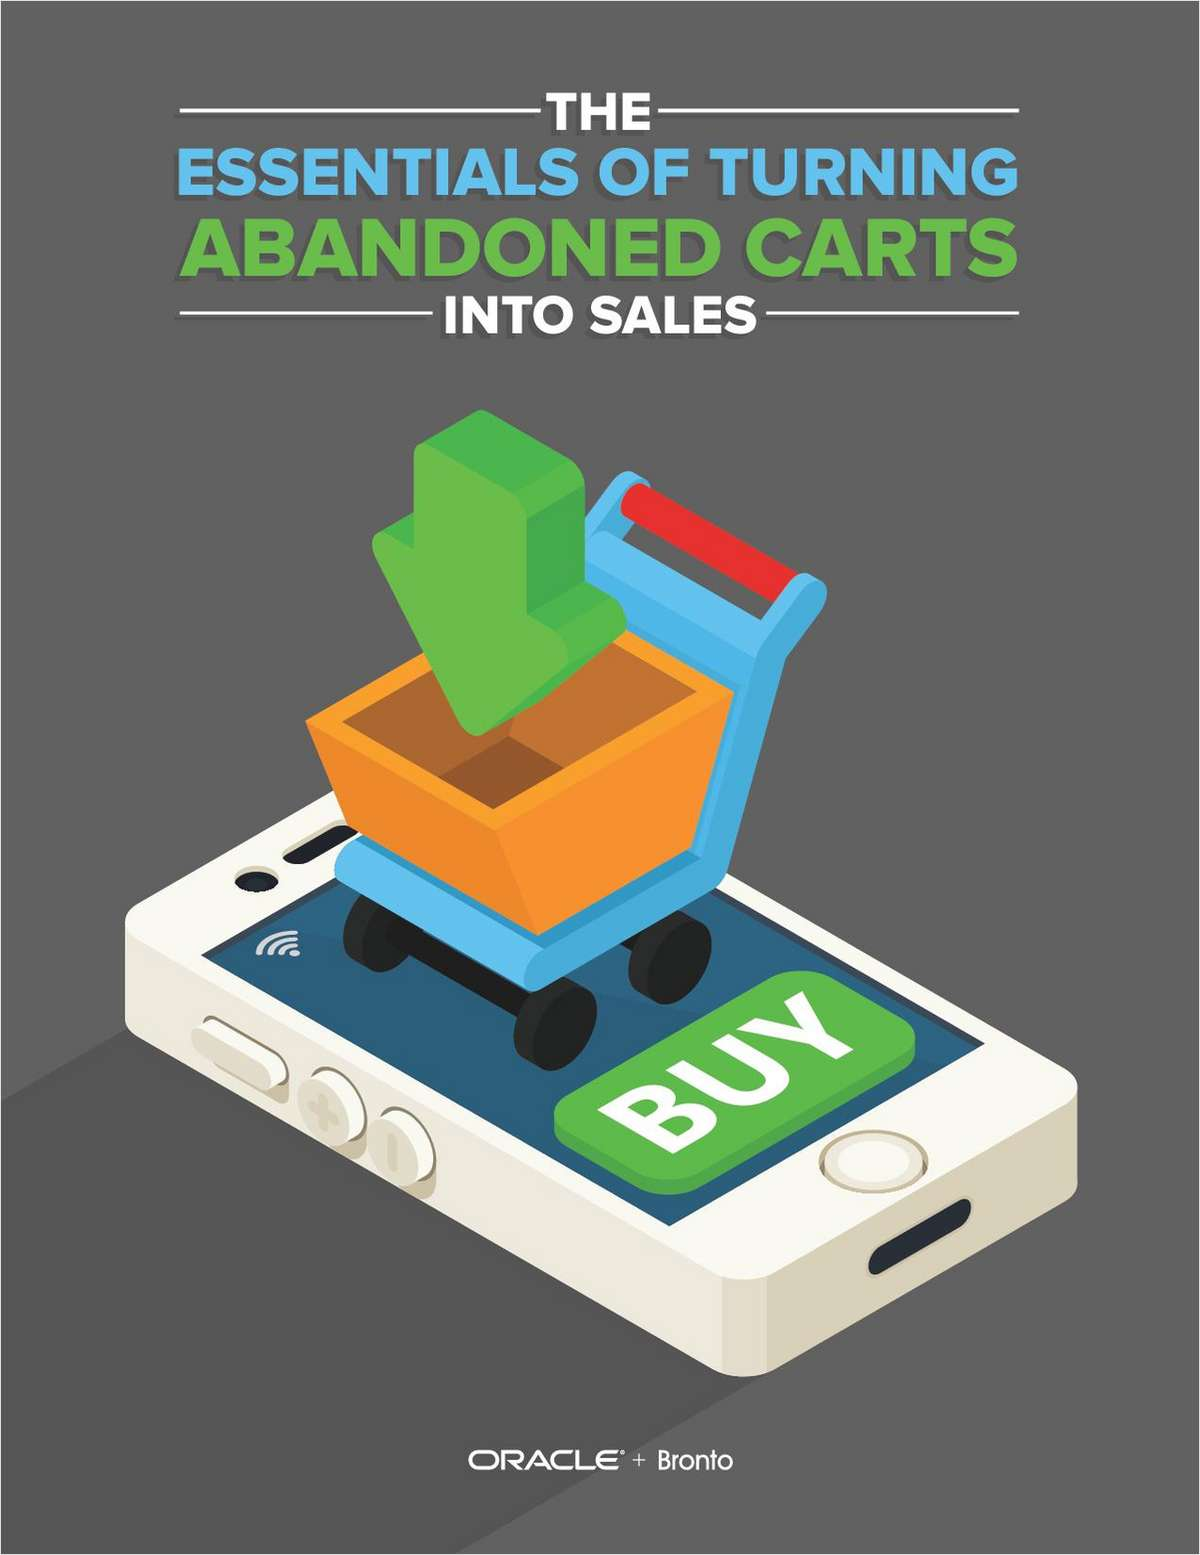 The Essentials of Turning Abandoned Carts into Sales